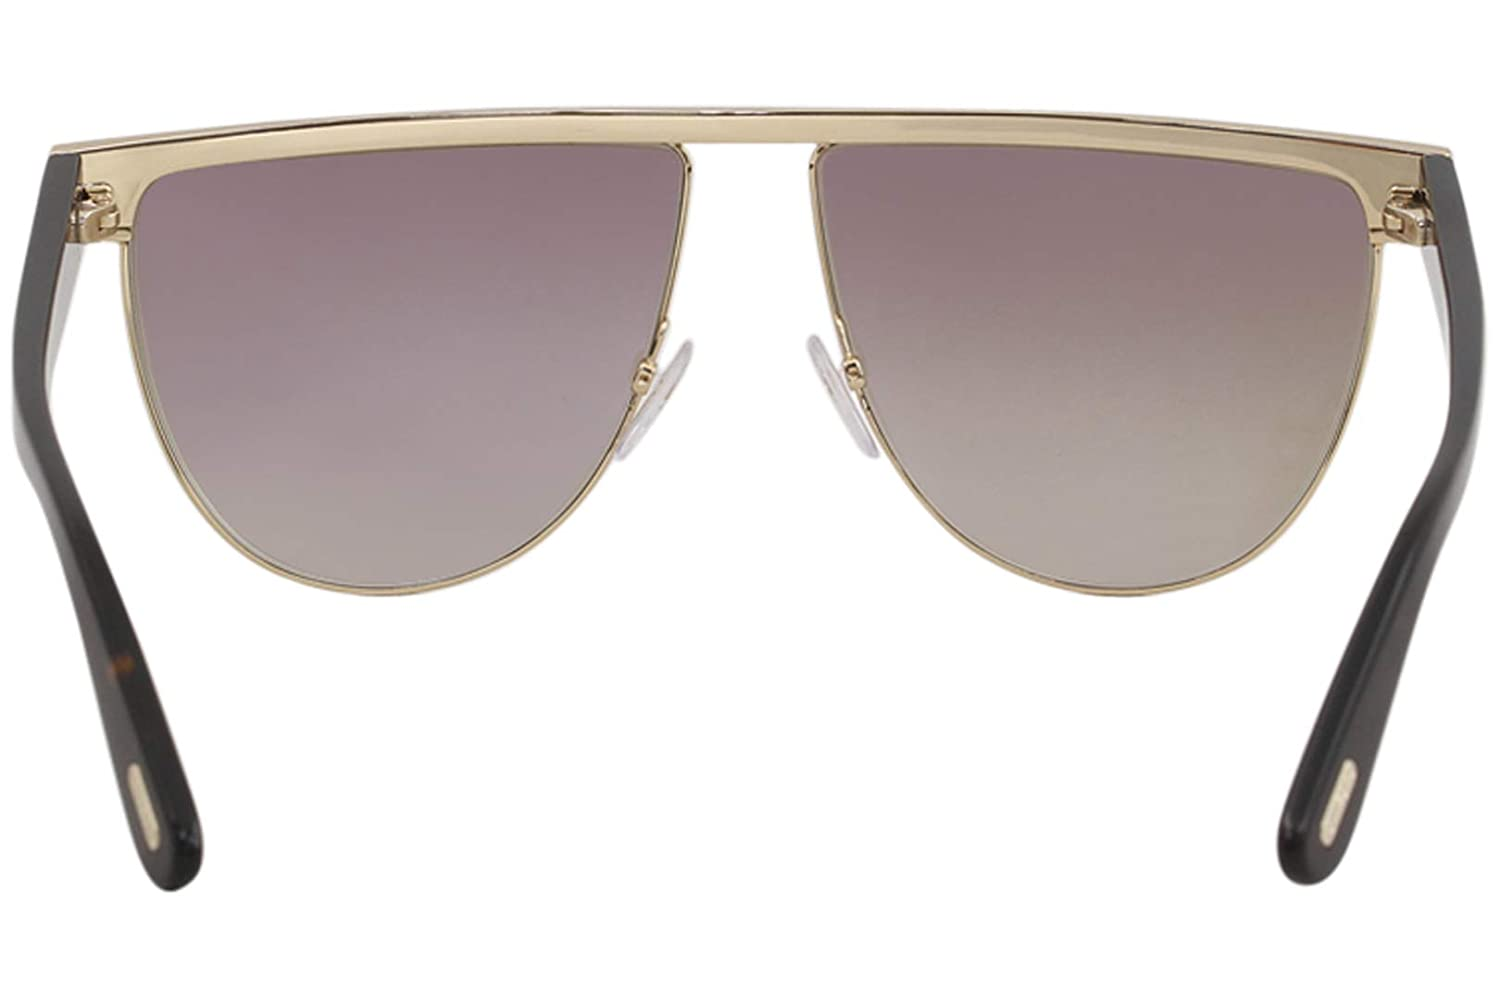 66fd3a9132 Sunglasses Tom Ford FT 0570 Stephanie- 02 28G shiny rose gold   brown  mirror at Amazon Men s Clothing store